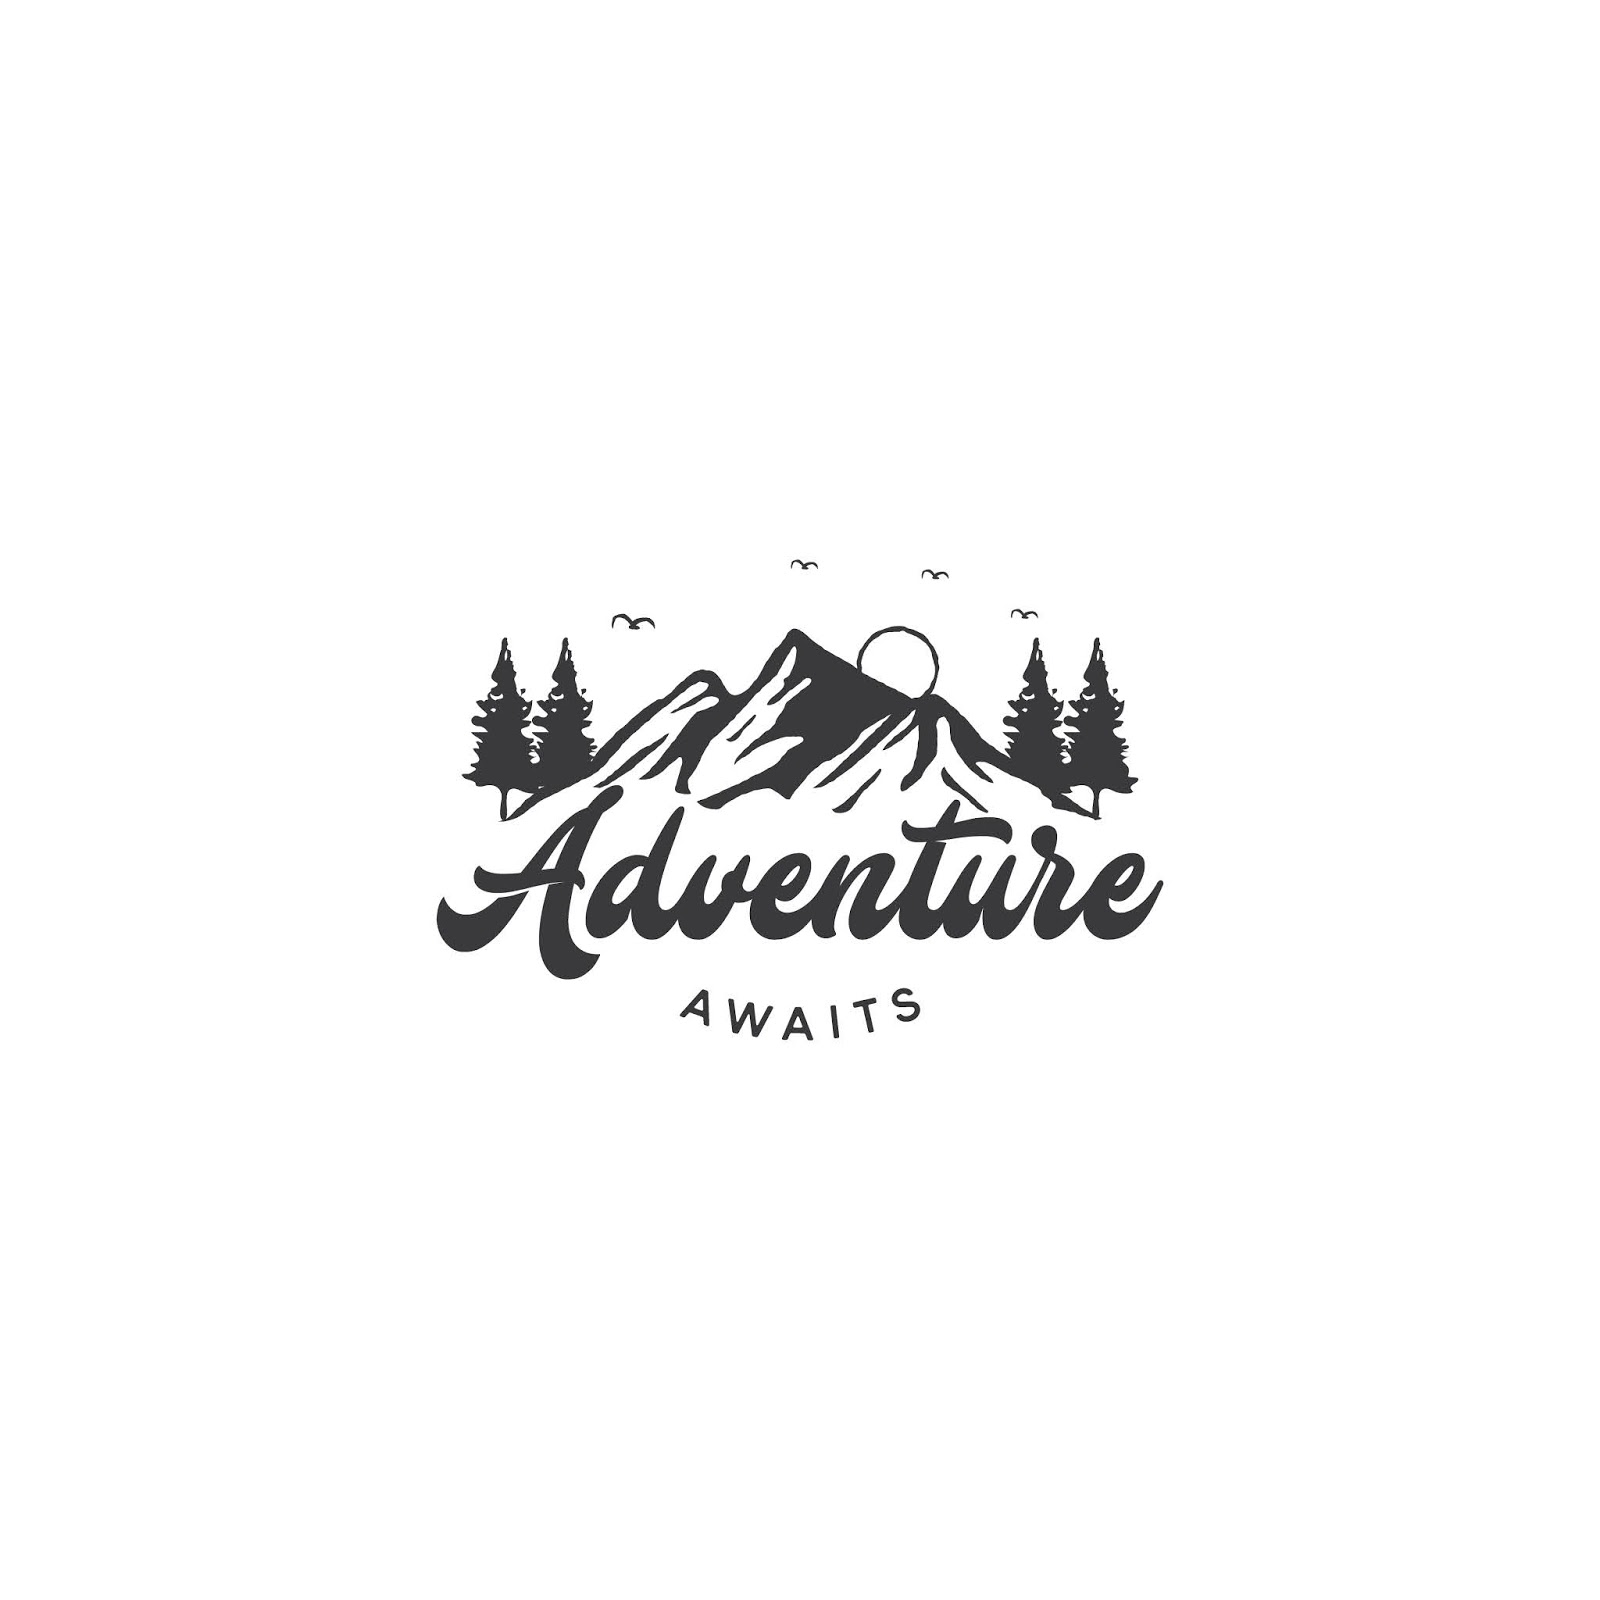 Mountain Logo Adventure Outdoor Free Download Vector CDR, AI, EPS and PNG Formats